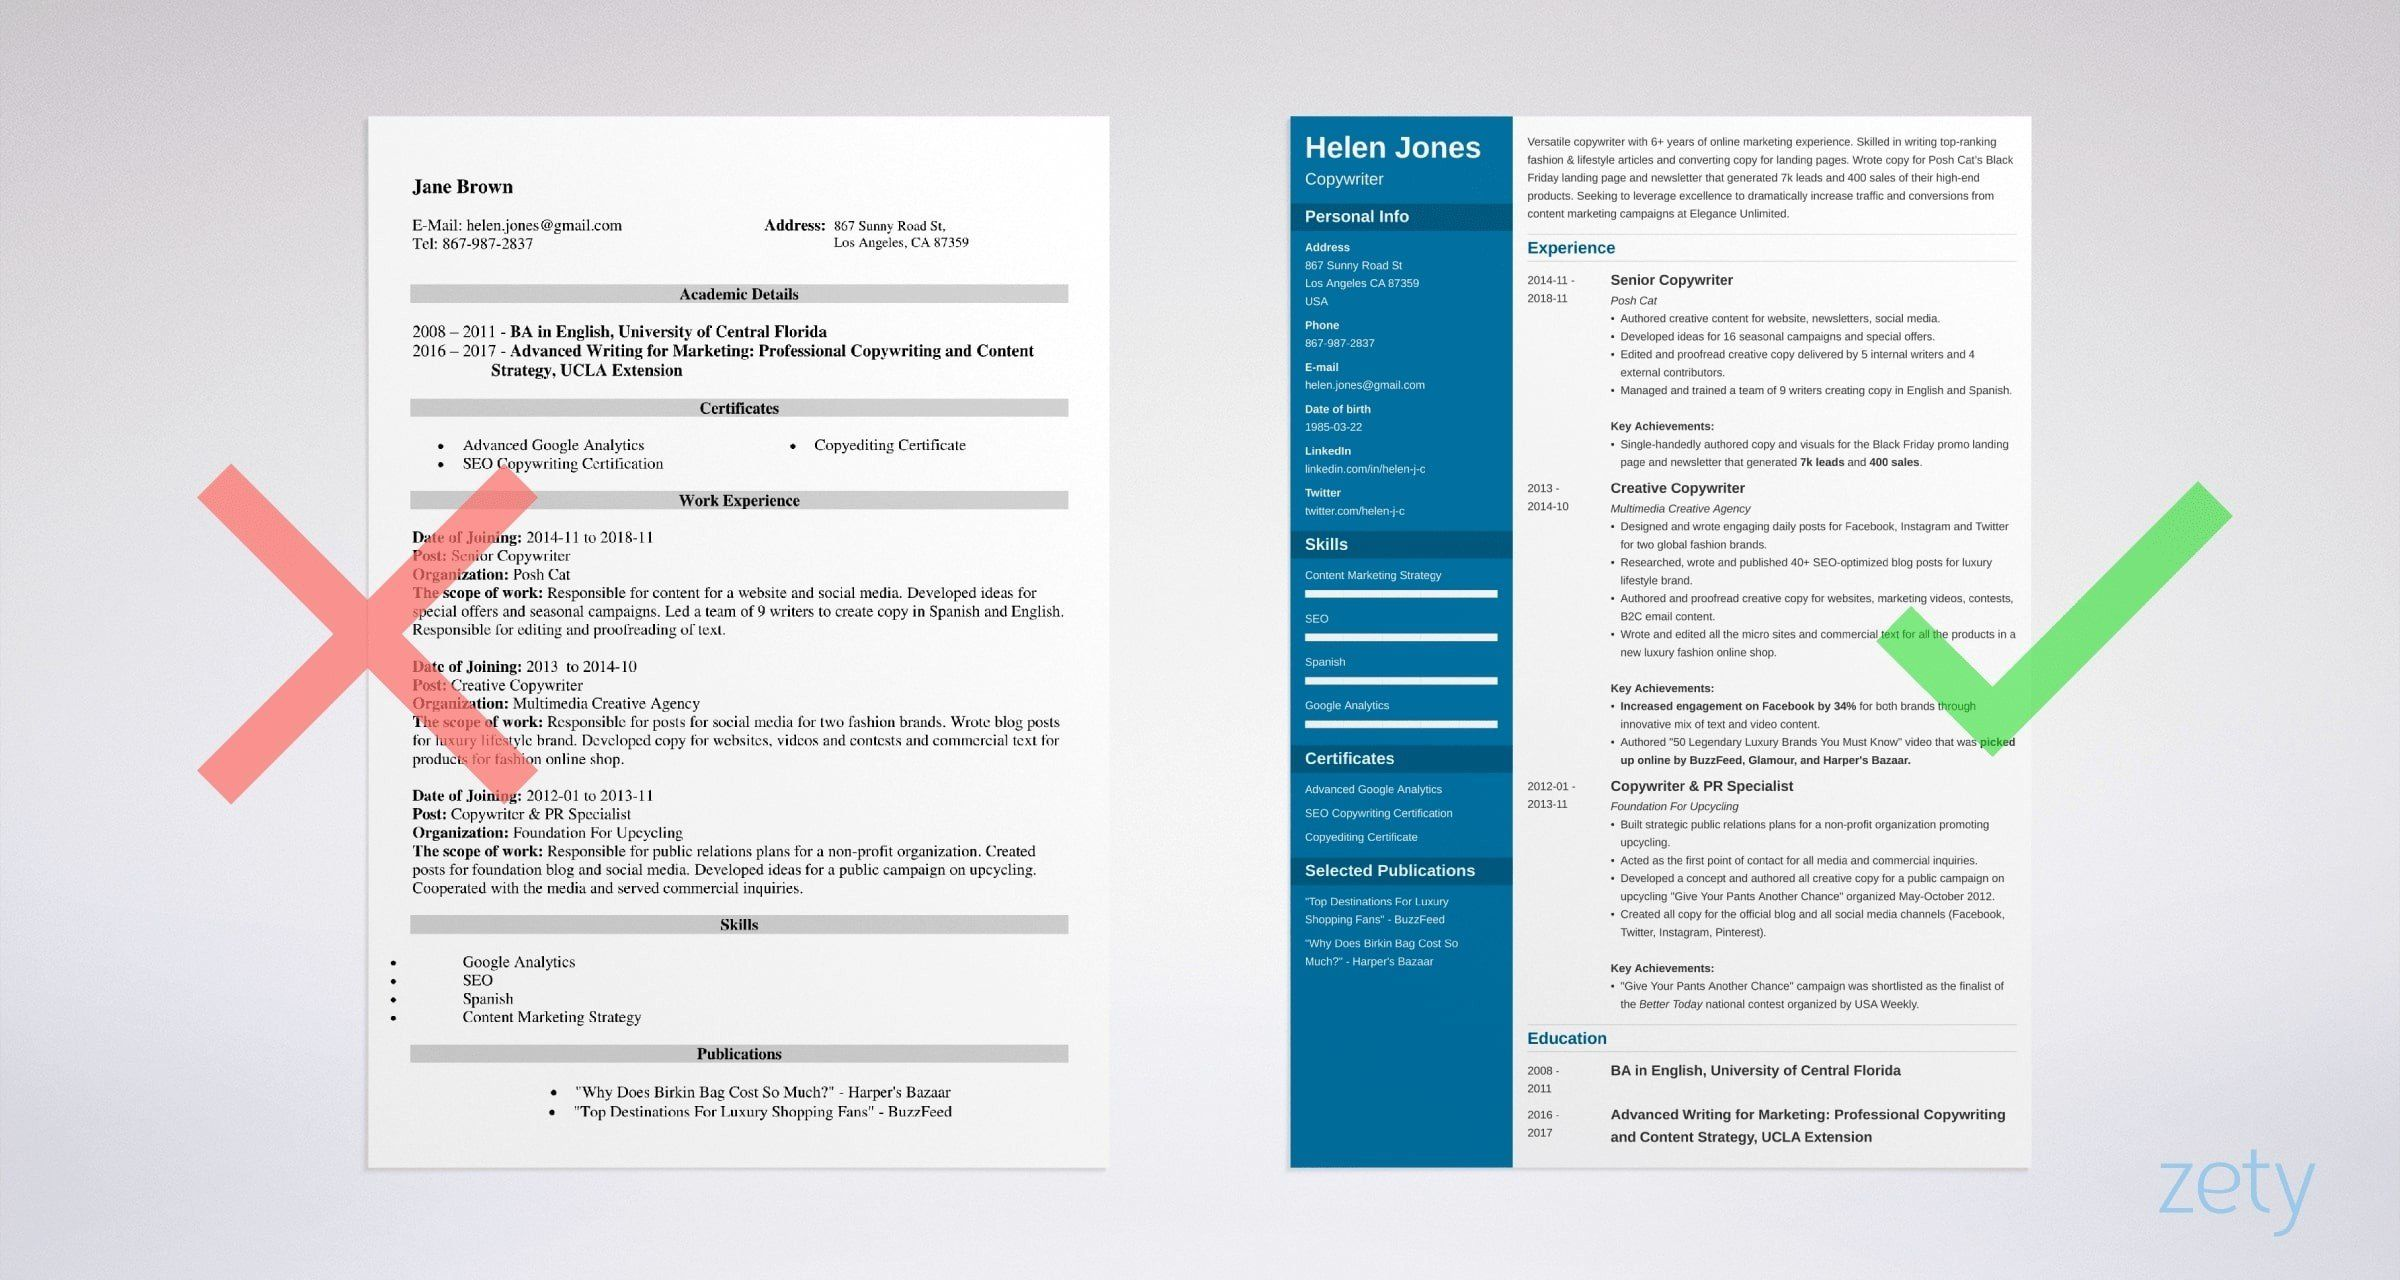 A complete guide to creating a writer resume that gets